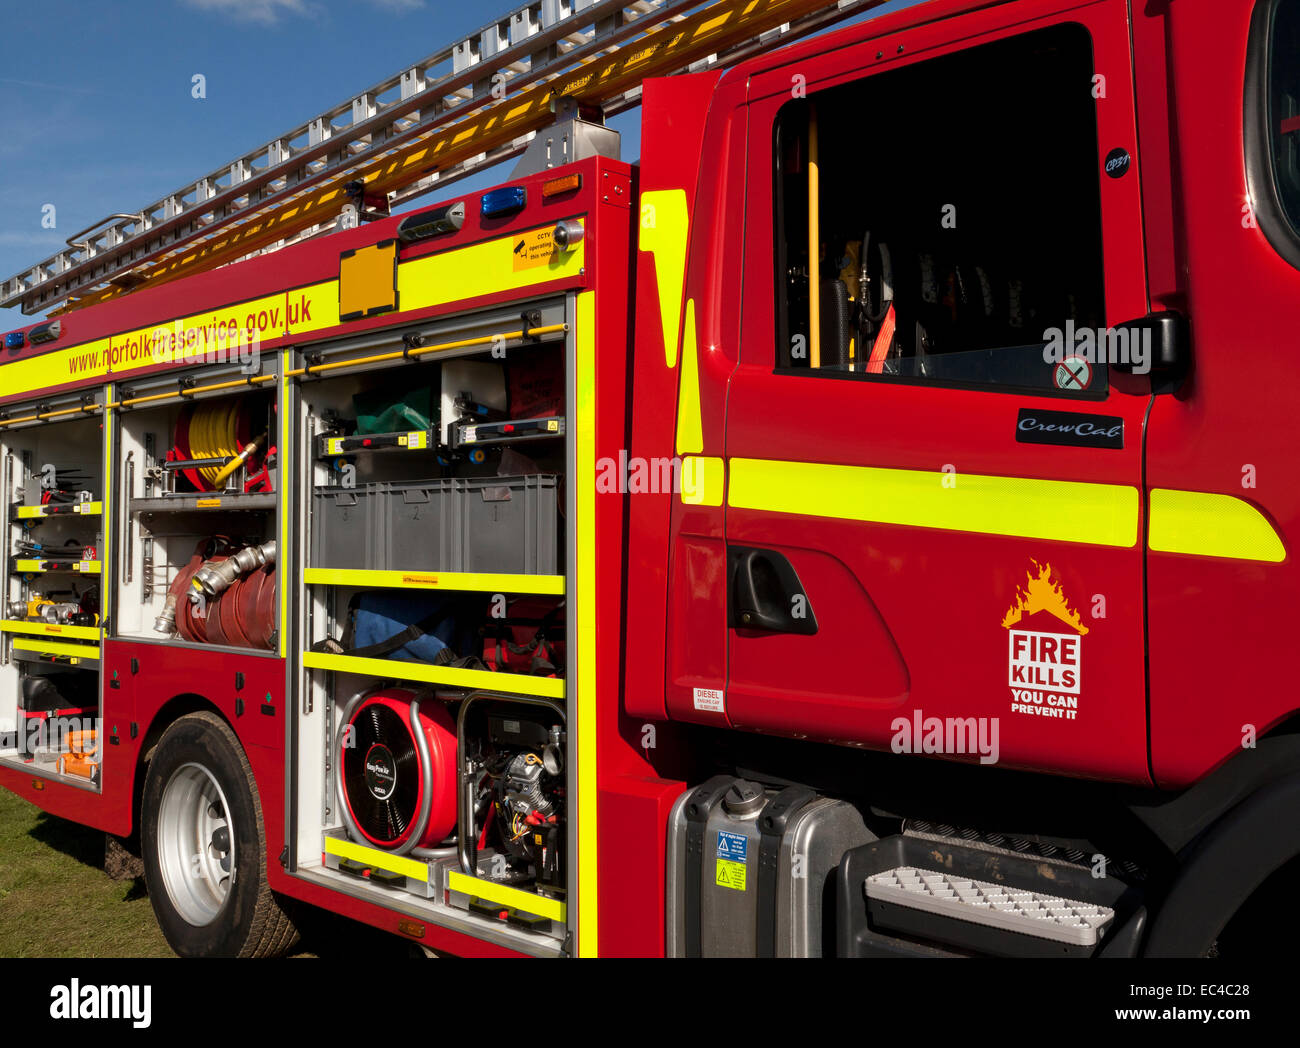 A fire engine showing all its equipment stowed on board - Stock Image